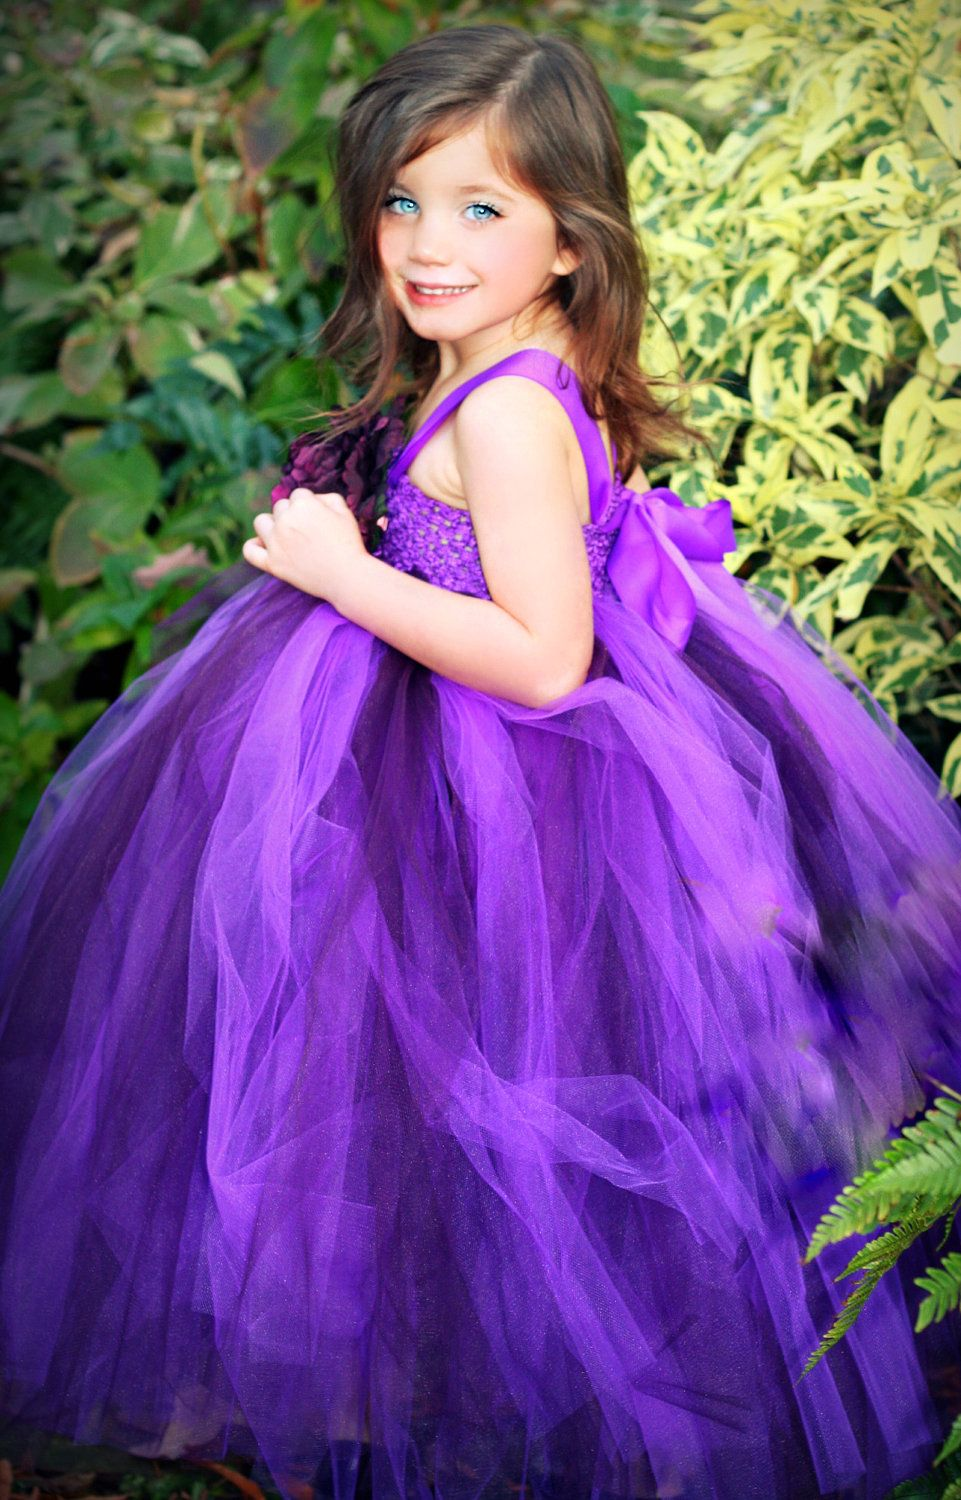 Decadently Purple Flower Girl Tutu Dress featuring purple and plum ...